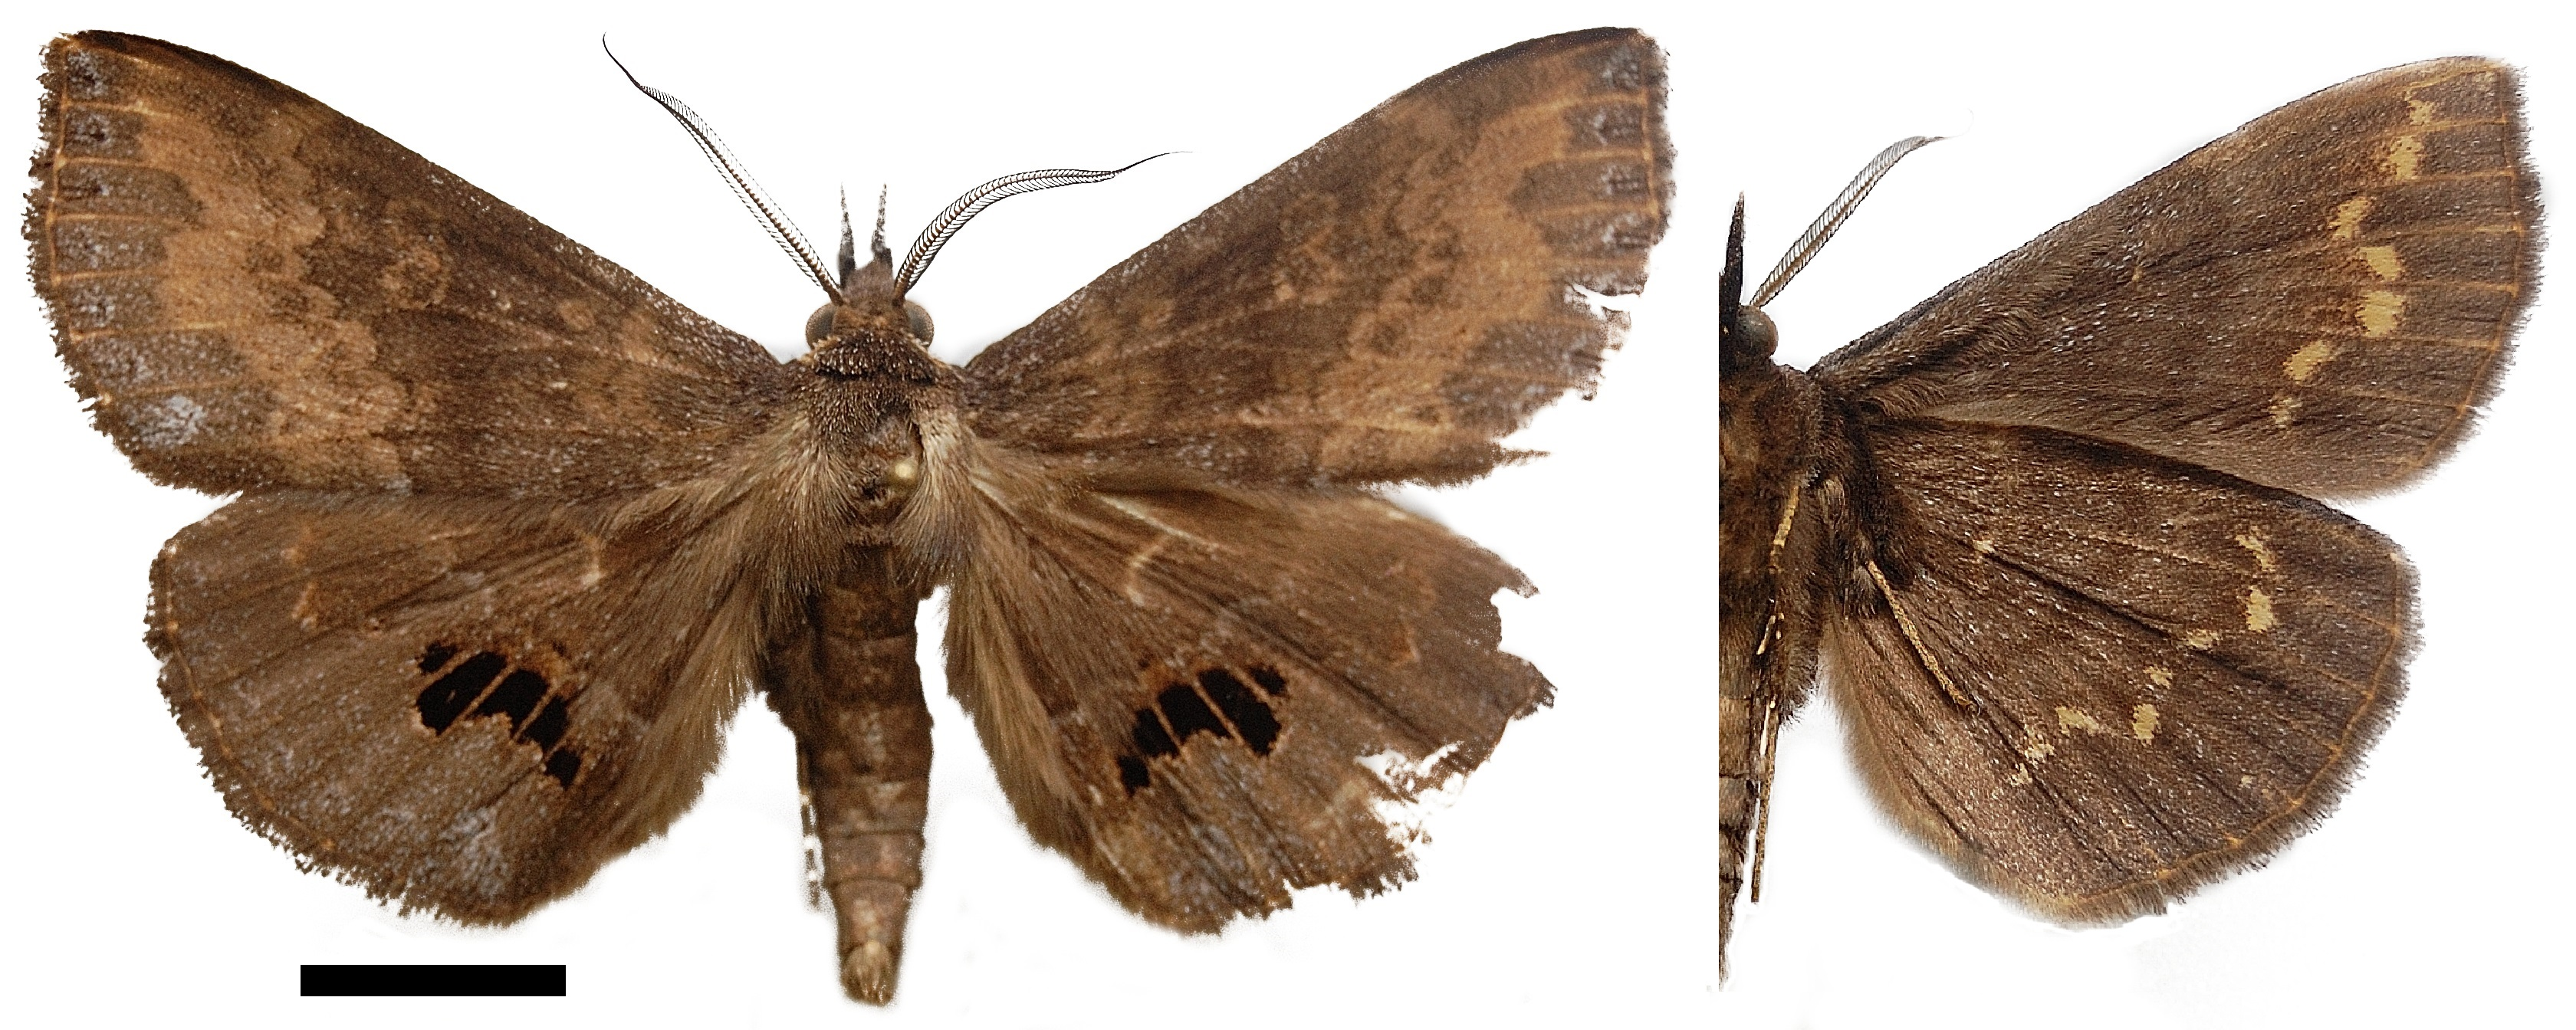 So far, Deinypena lathetica Holland, 1894 has been known from Gabon only.